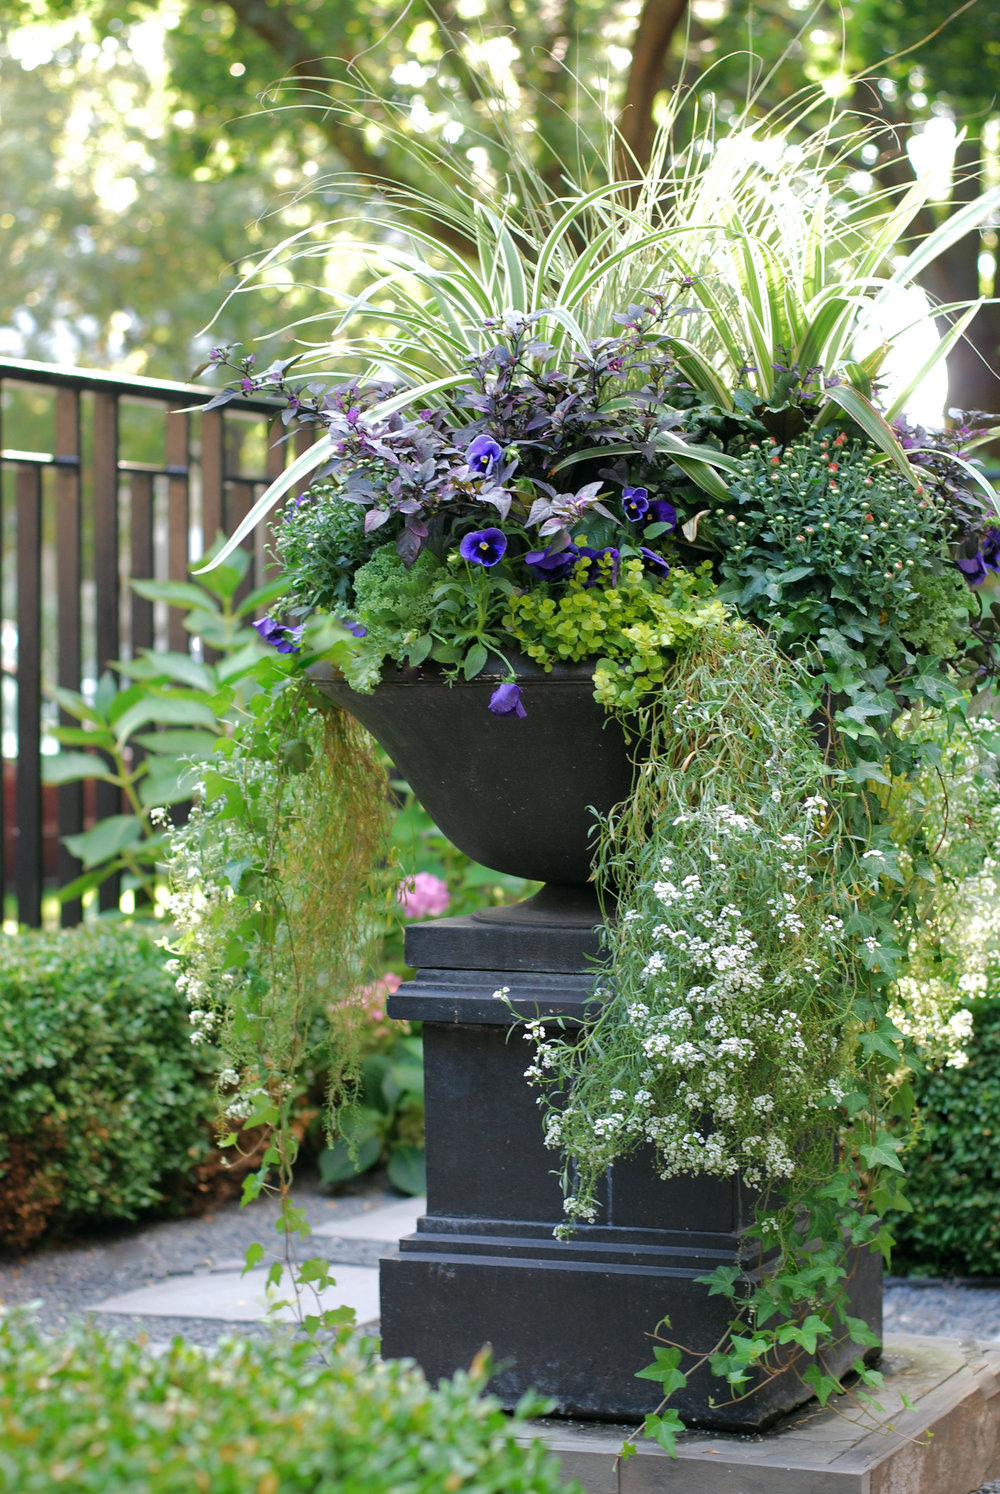 Container Gardens - Container Gardening is our area of expertise. We design exceptional displays to enhance your property's style and image. We provide: - Custom designs- Seasonal and custom rotations- Local and tropical plants- Flowering plants- Colorful foliage- Decorative grasses- Unique Containers- Window Boxes